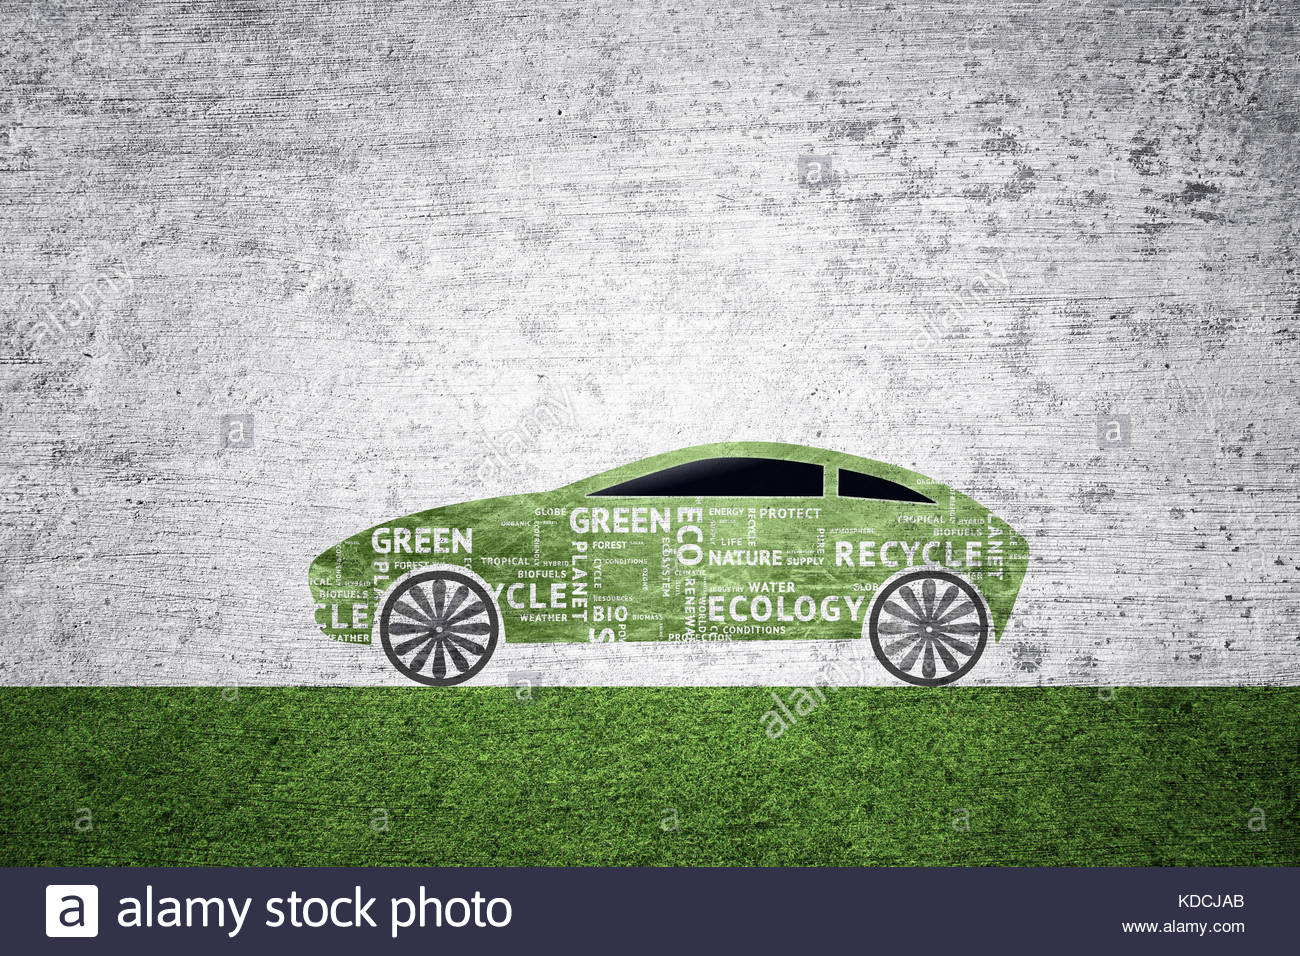 concept green illustrated car icon textured with ecology word tags